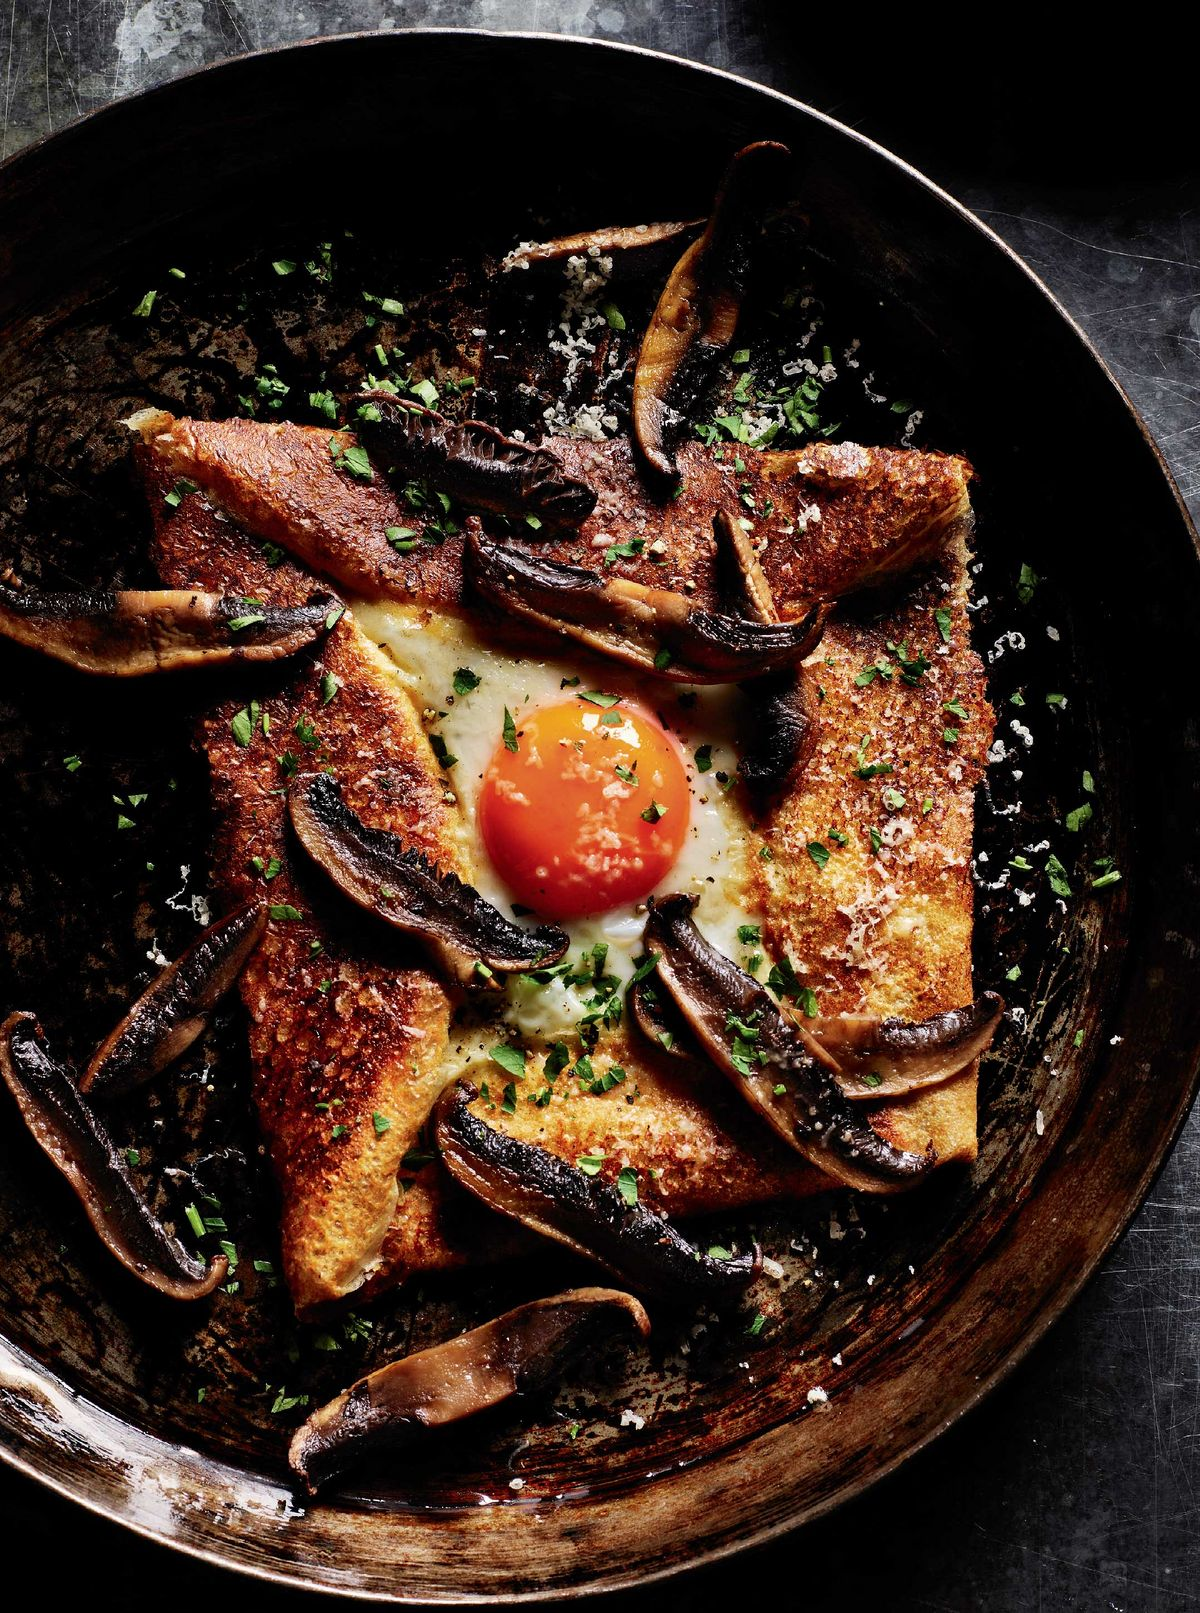 Rick Stein's Buckwheat Crepes with Eggs and Mushrooms